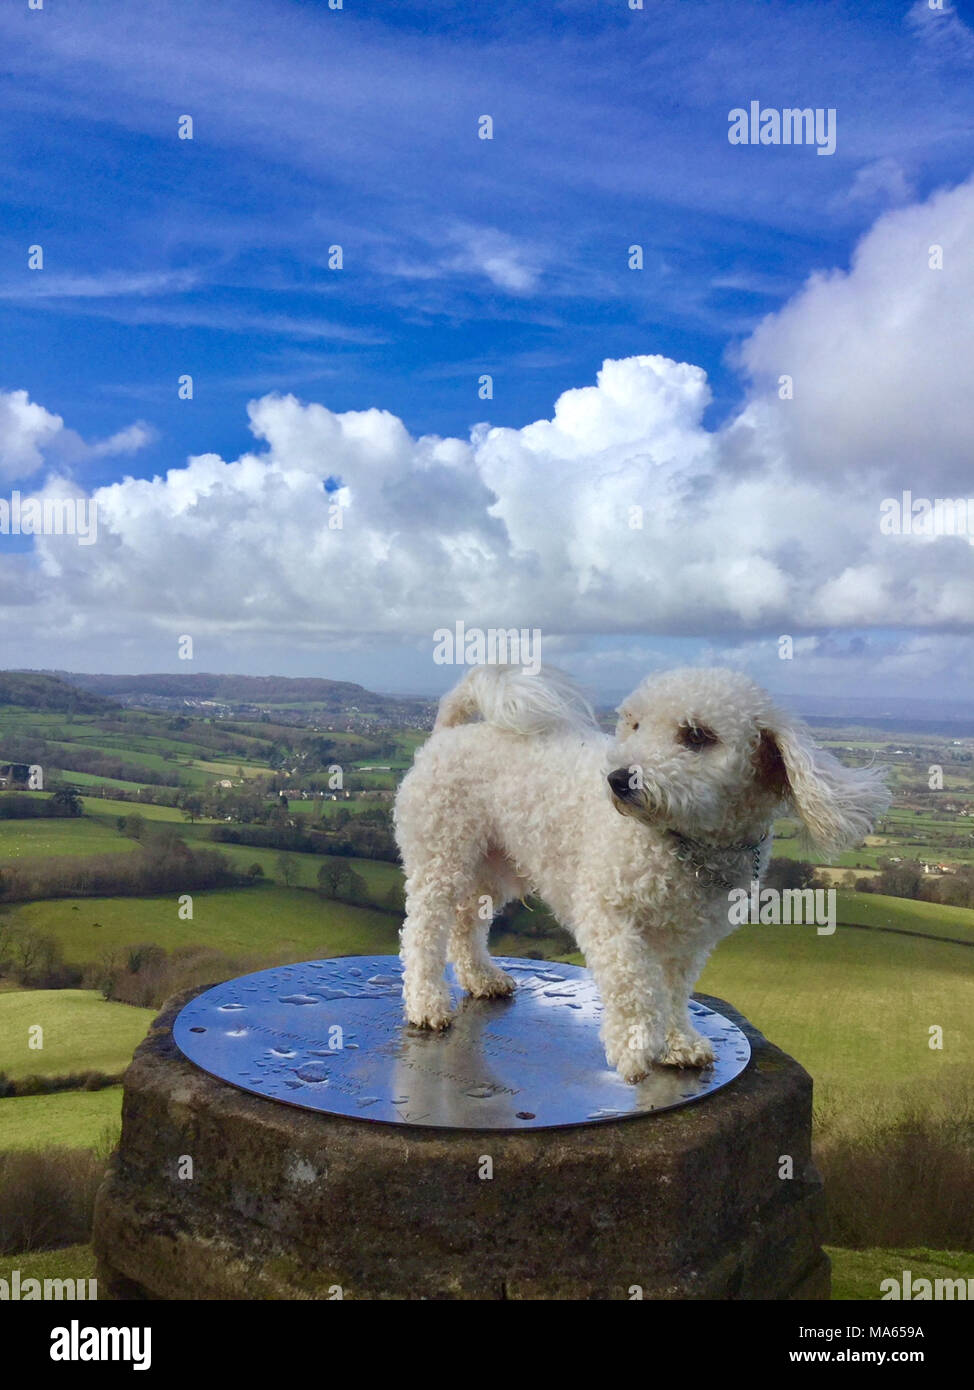 Bichon Frise Standing on an Obelisk in Gloucestershire against a backdrop of English Countryside with a view of The River Severn and Wales with Blue S - Stock Image